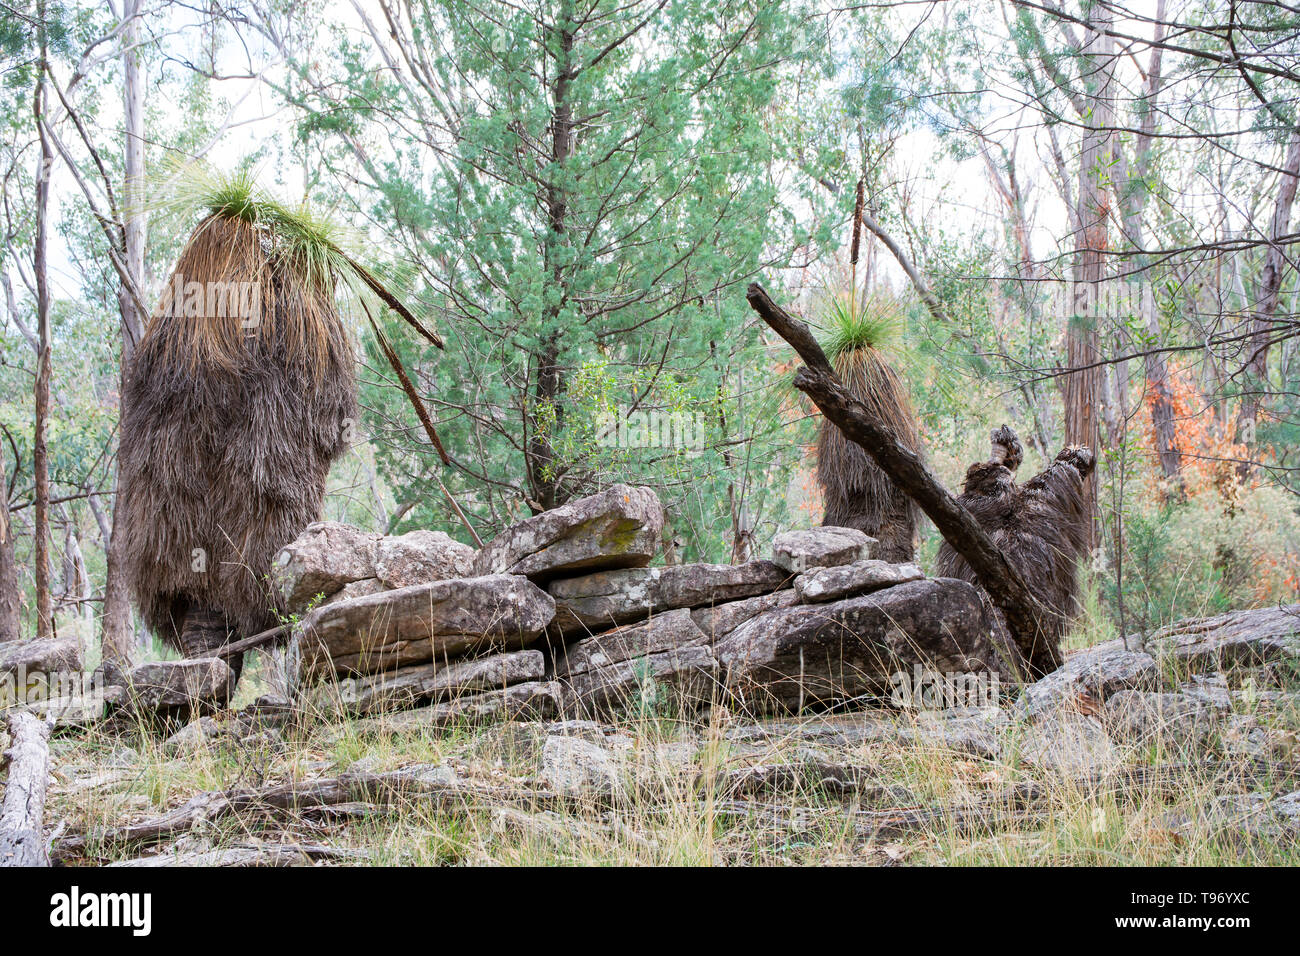 Australian Temperate Forest scene with ancient Grass Trees growing among cracked rocks. Northern NSW Australia. - Stock Image